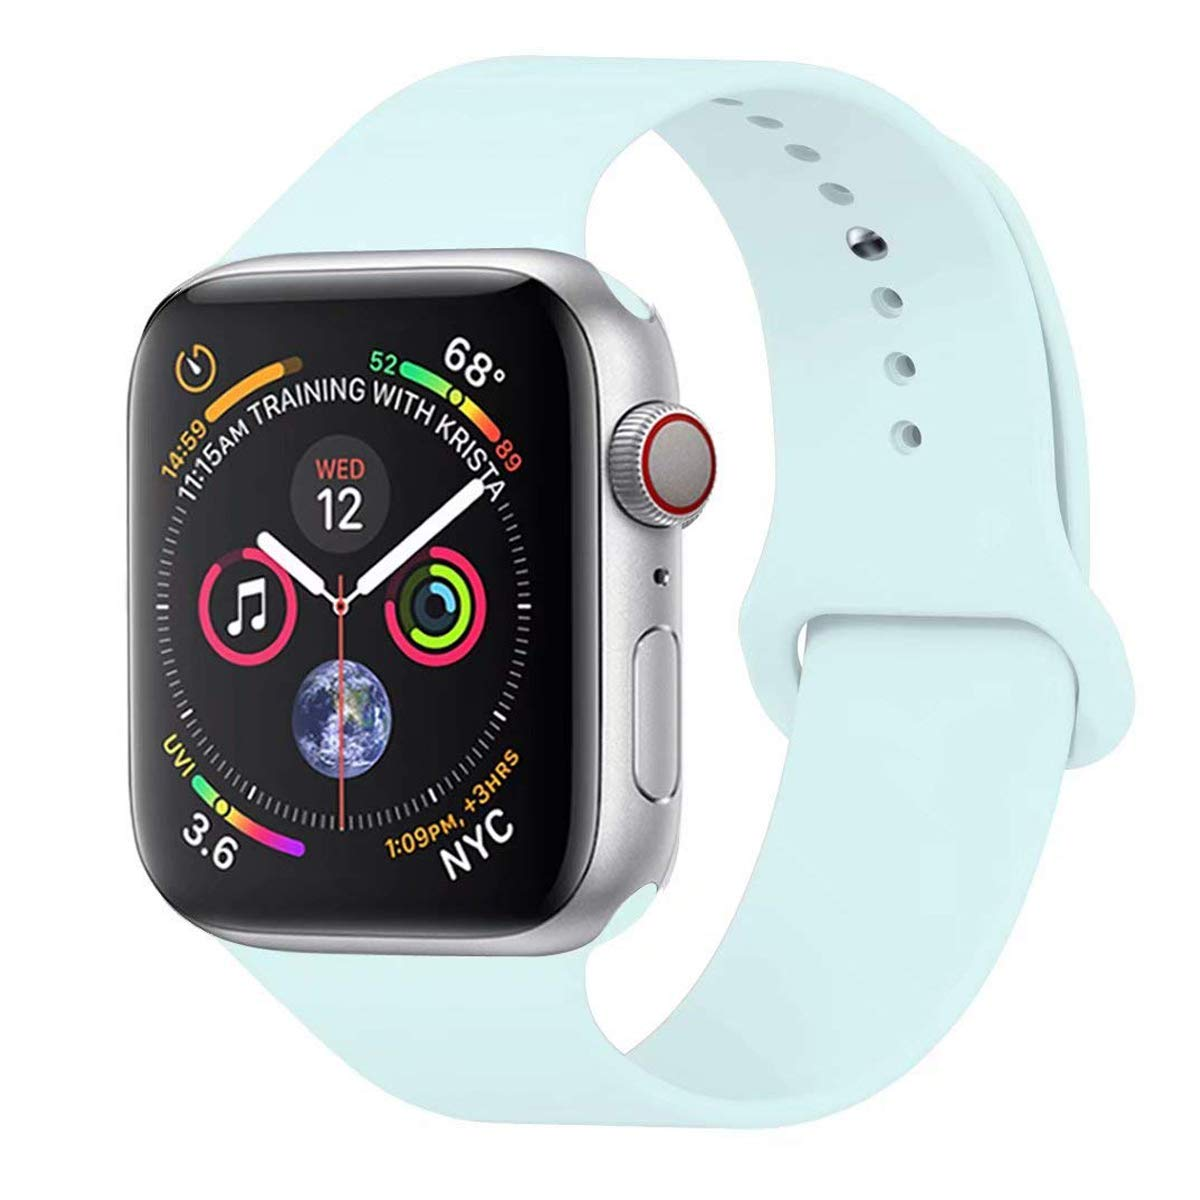 Para Correa Apple Watch 42MM , Suave Silicona iWatch Correa, Para Series 3, Series 2, Series 1, Nike+, Edition, Hermes (Turquoise, 42MM-ML): Amazon.es: Deportes y aire libre